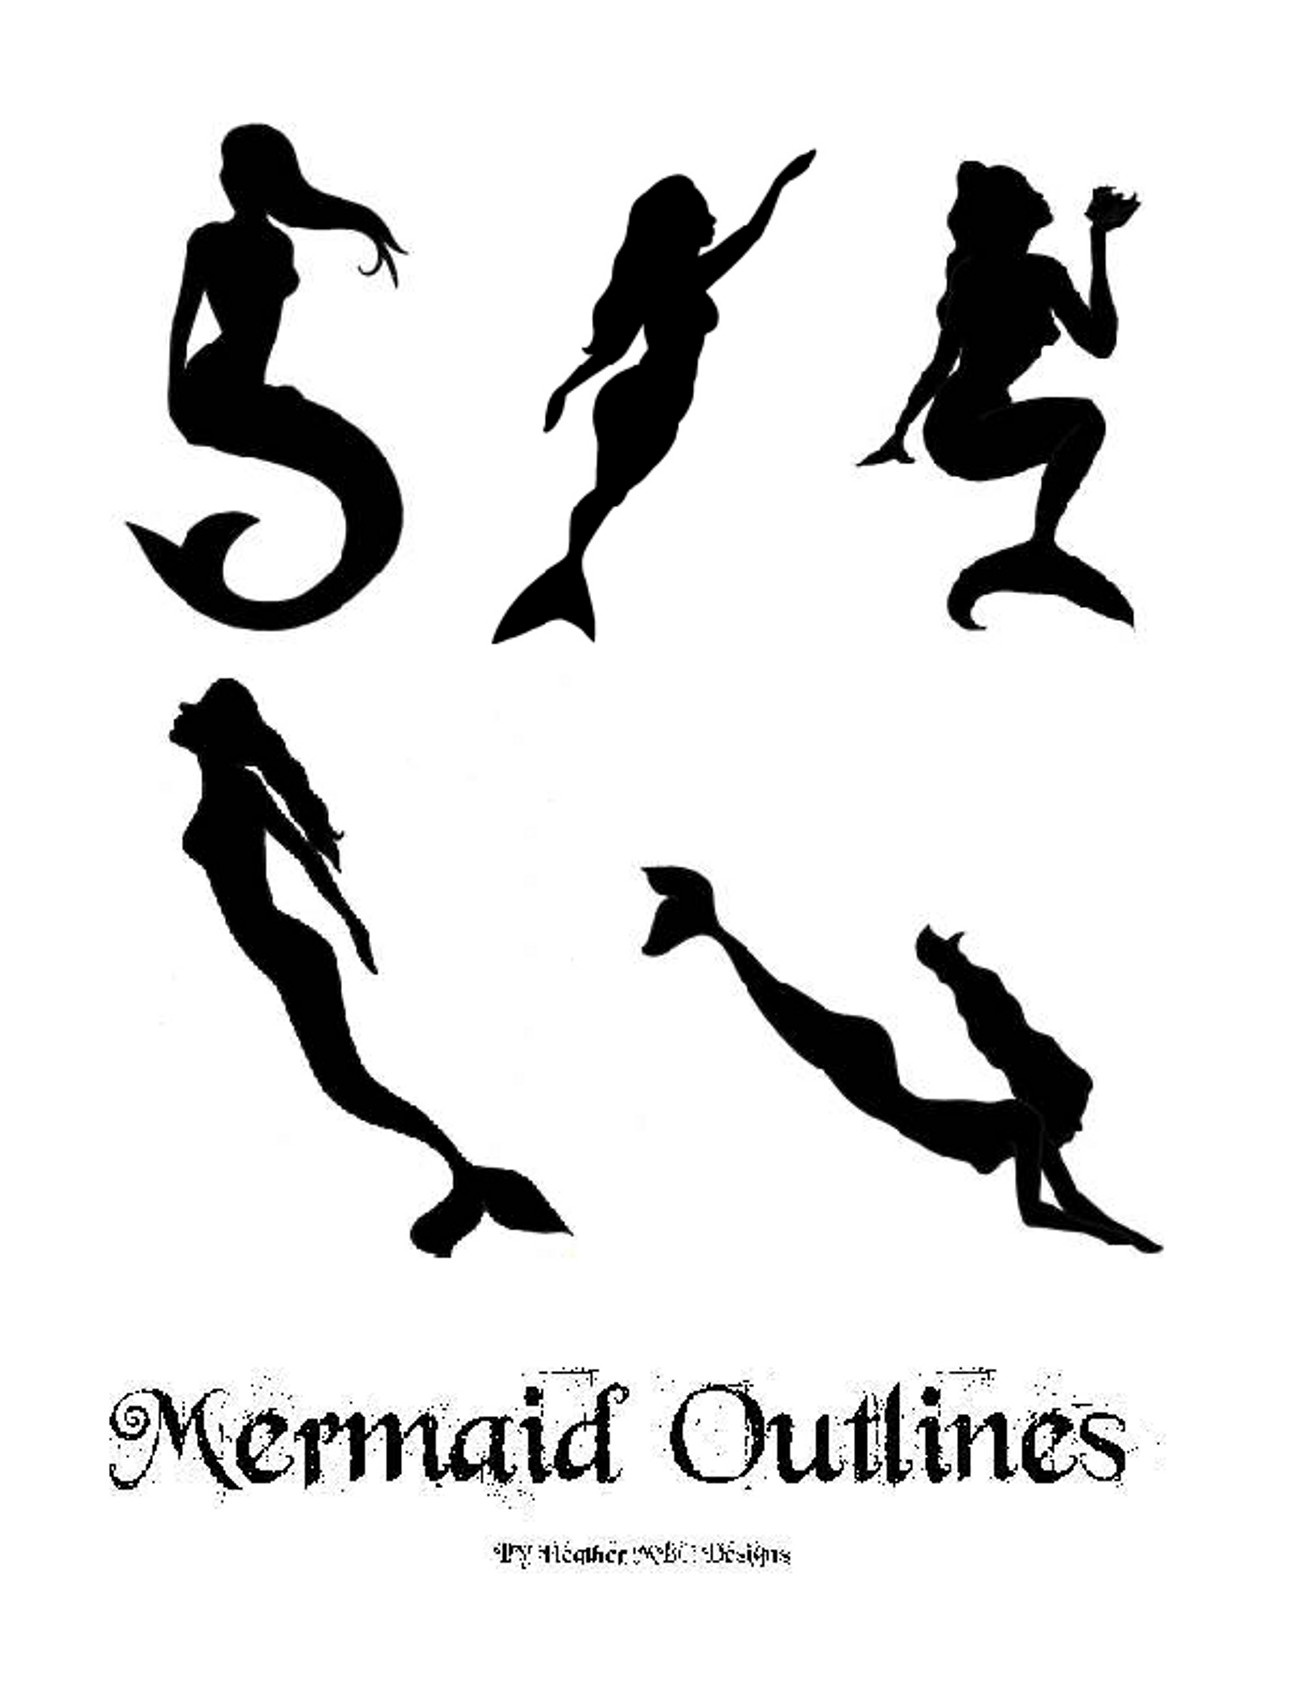 image about Mermaid Template Printable referred to as Mermaid Outlines and Templates